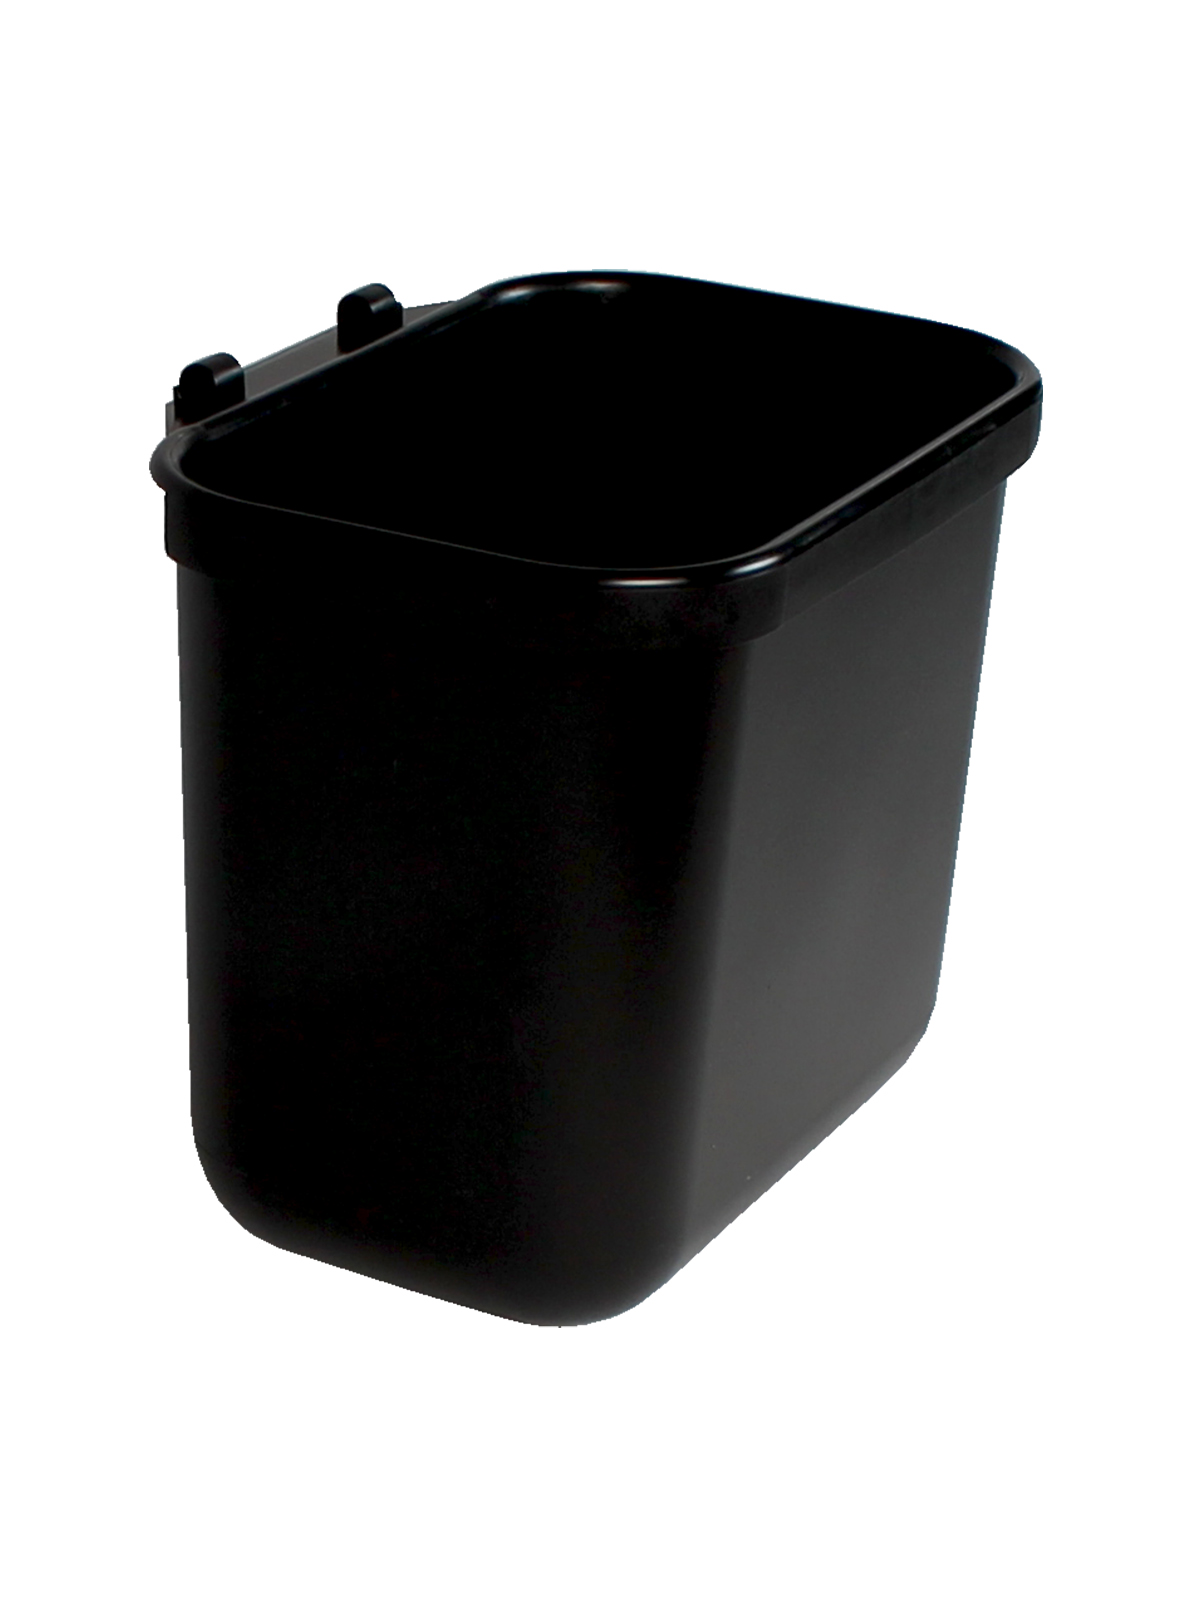 HANGING WASTE BASKET - Body - Black